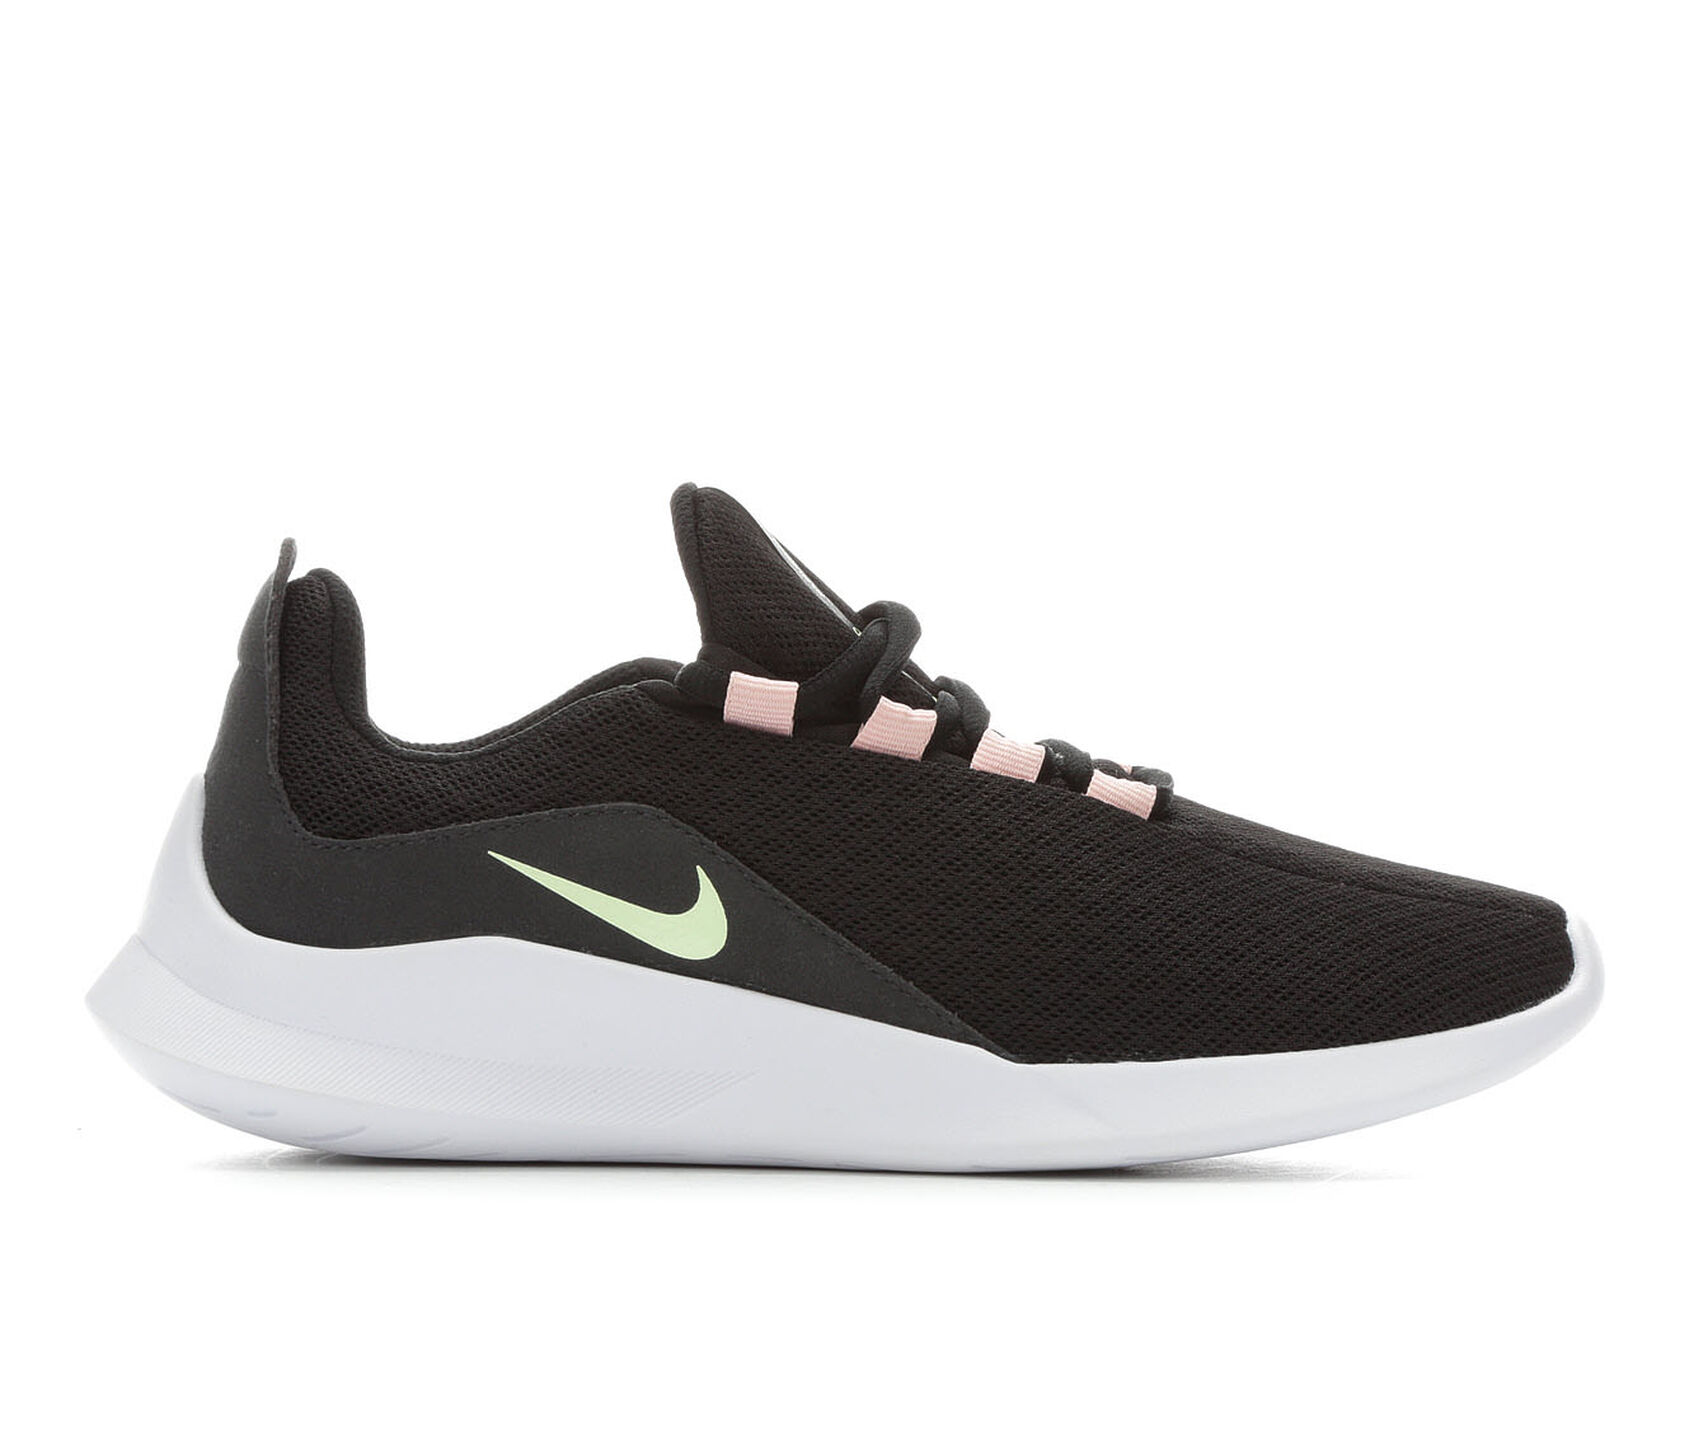 c0987f786d3d ... Nike Viale Sneakers. Previous